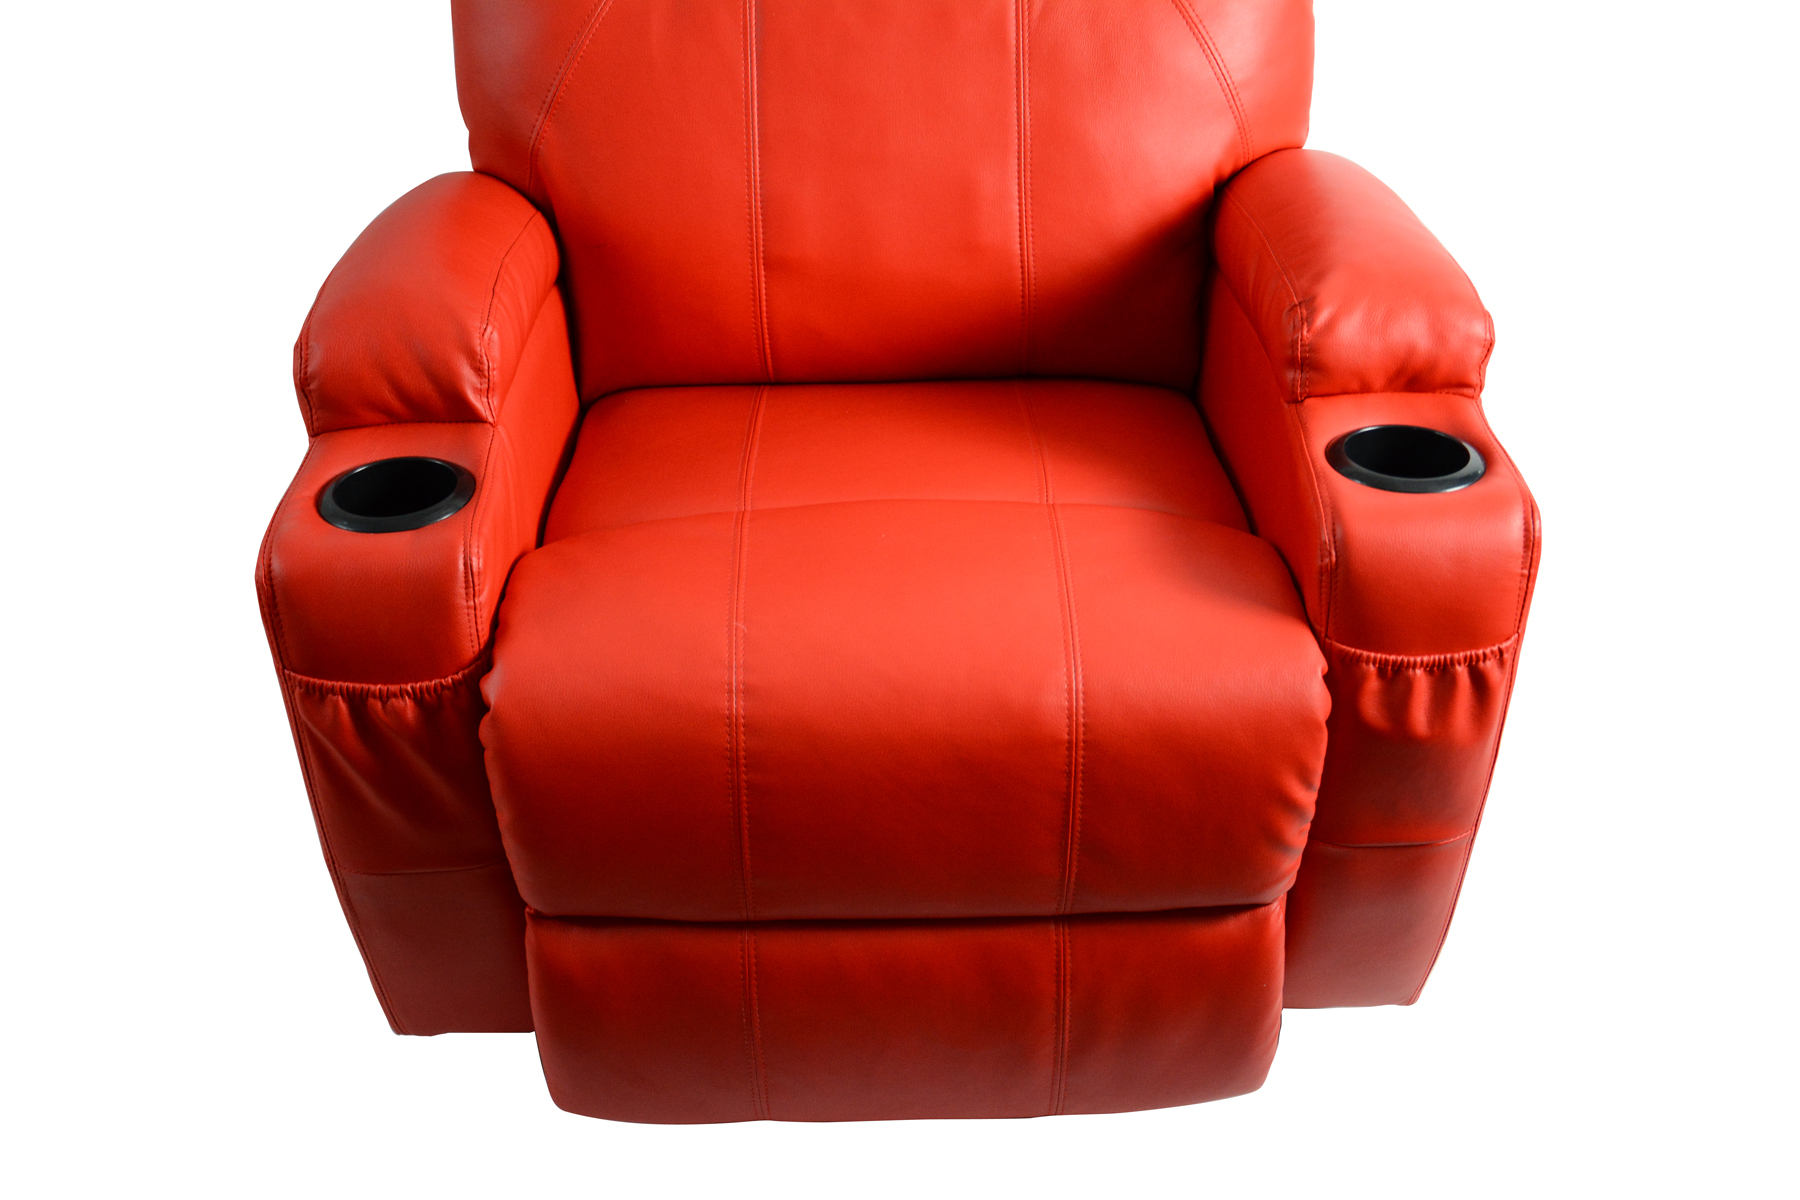 Massage Recliner Sofa Chair Vibration Heat W Control